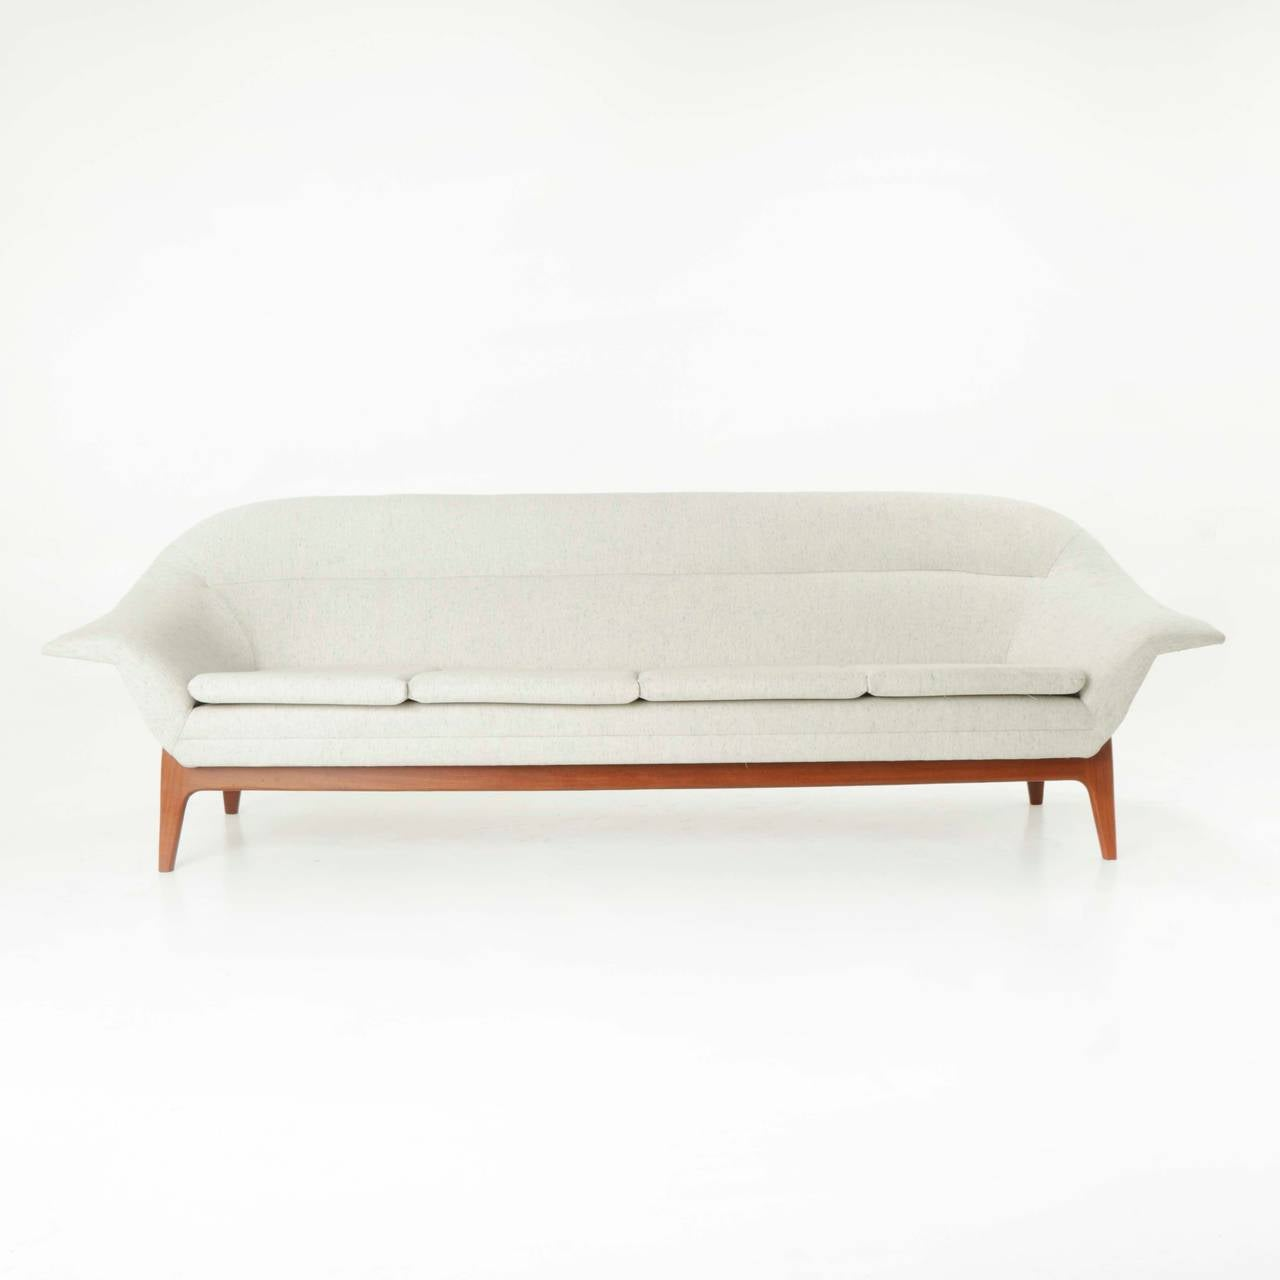 A lovely vintage sofa from Norway attributed to Rastad & Relling with sculptural solid teak base and upholstered frame with one thin seat cushion and an elegantly curved back. Fabric is speckled off-white (please refer to detail shots). 